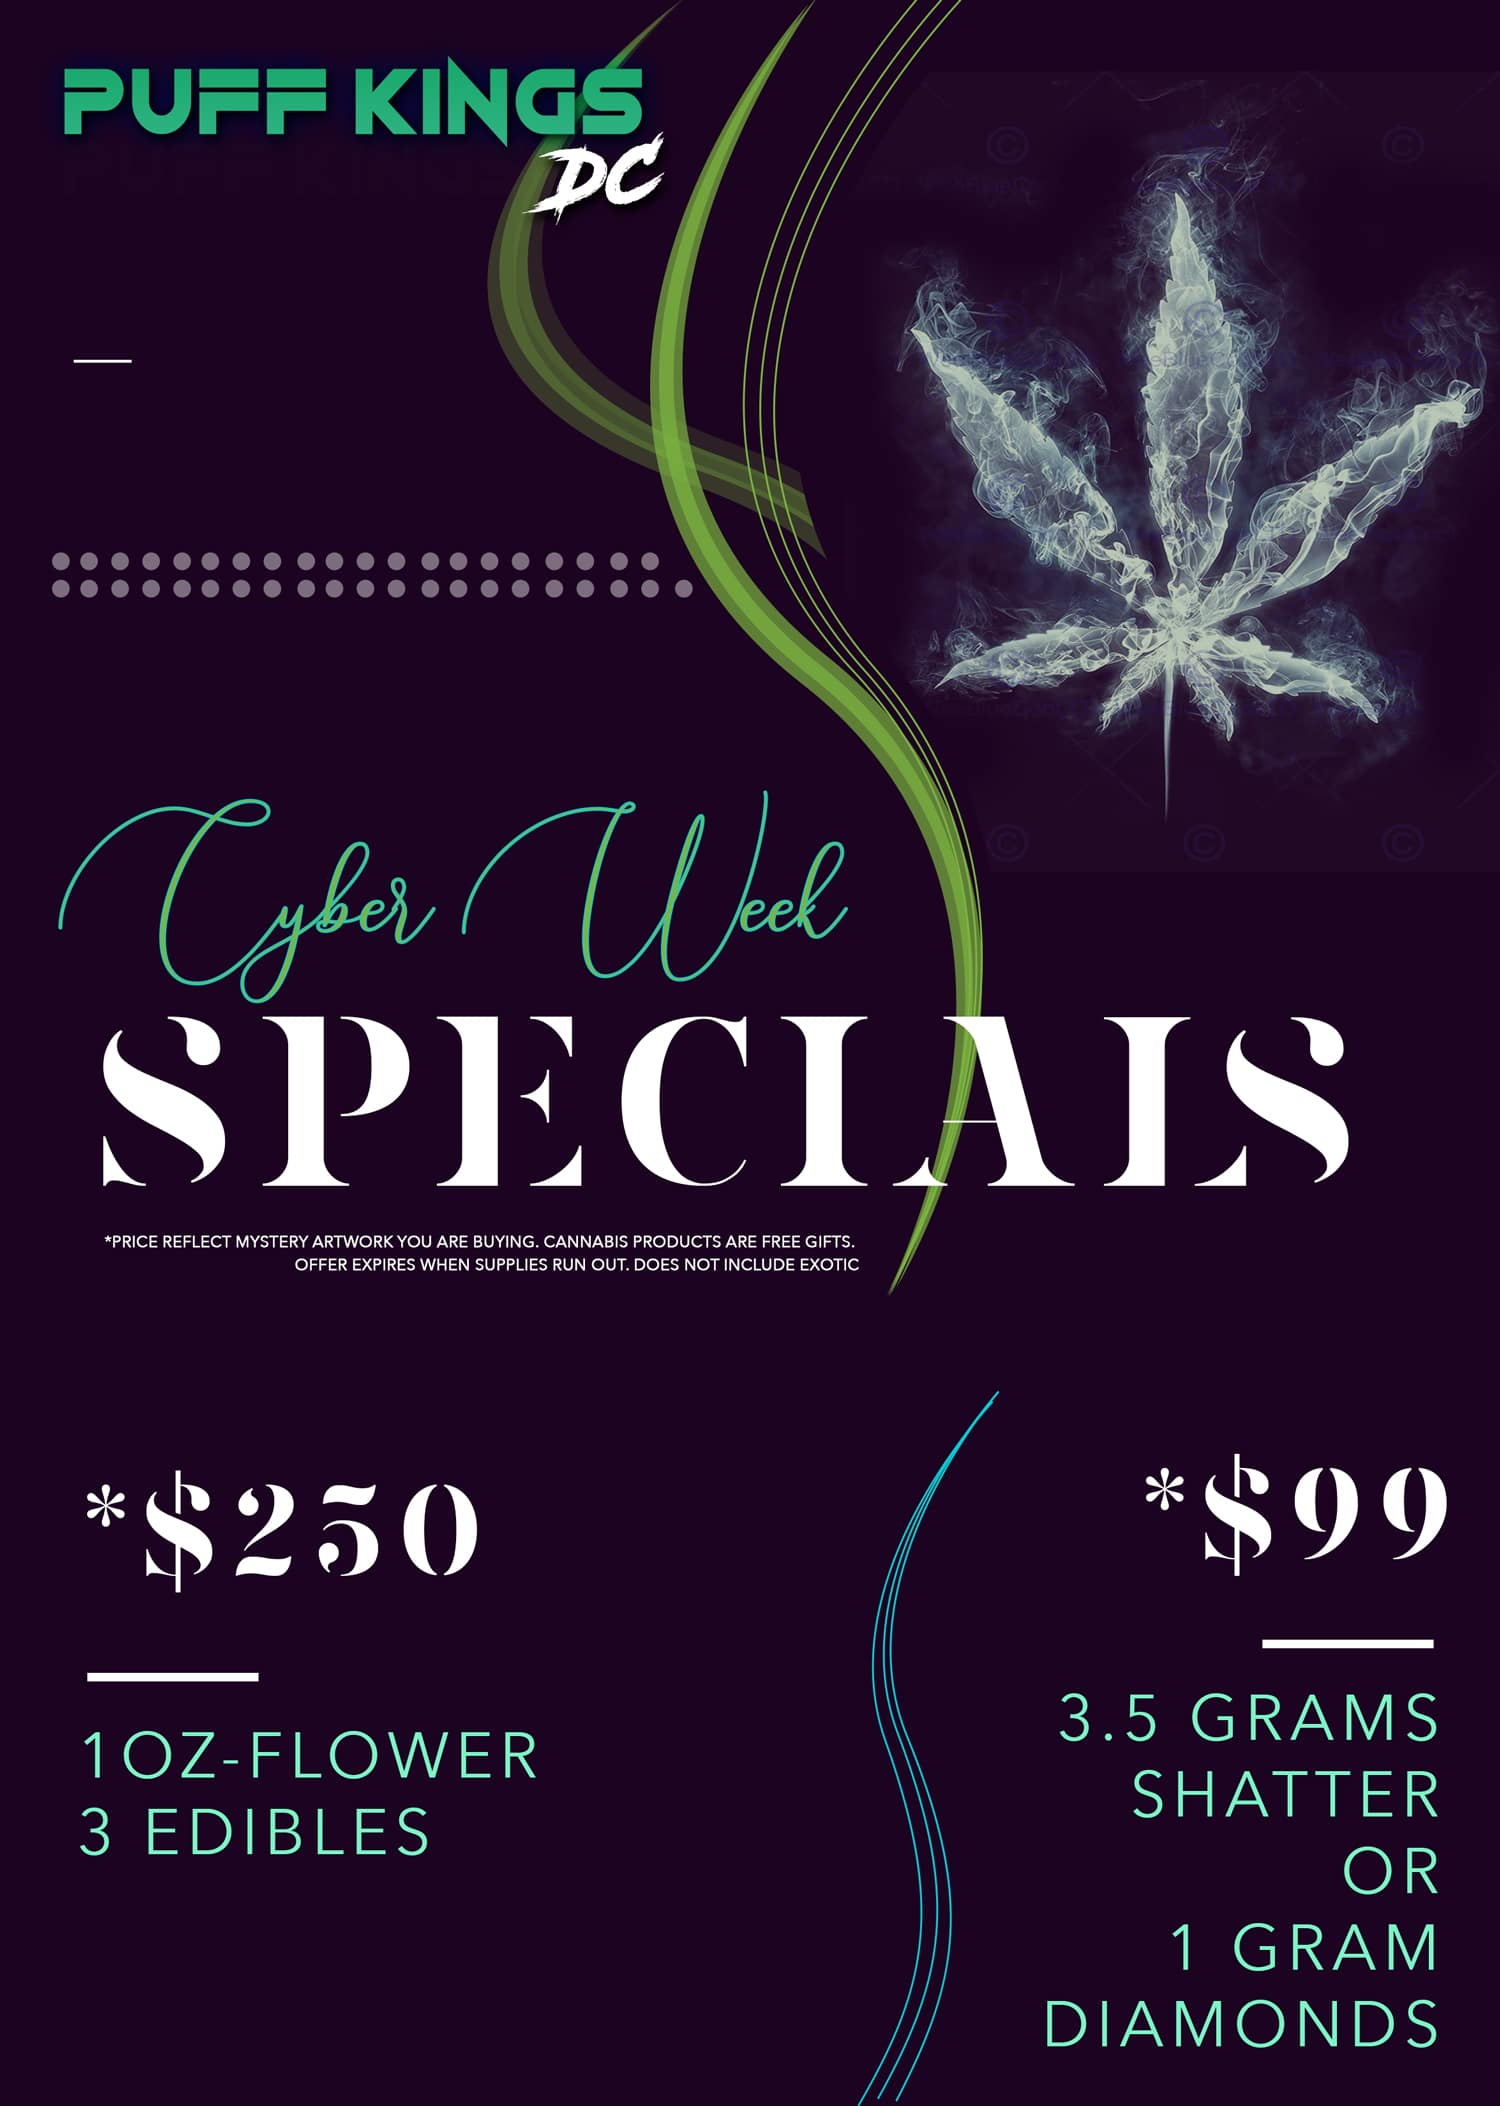 puff kings dc cyber week specials flyers